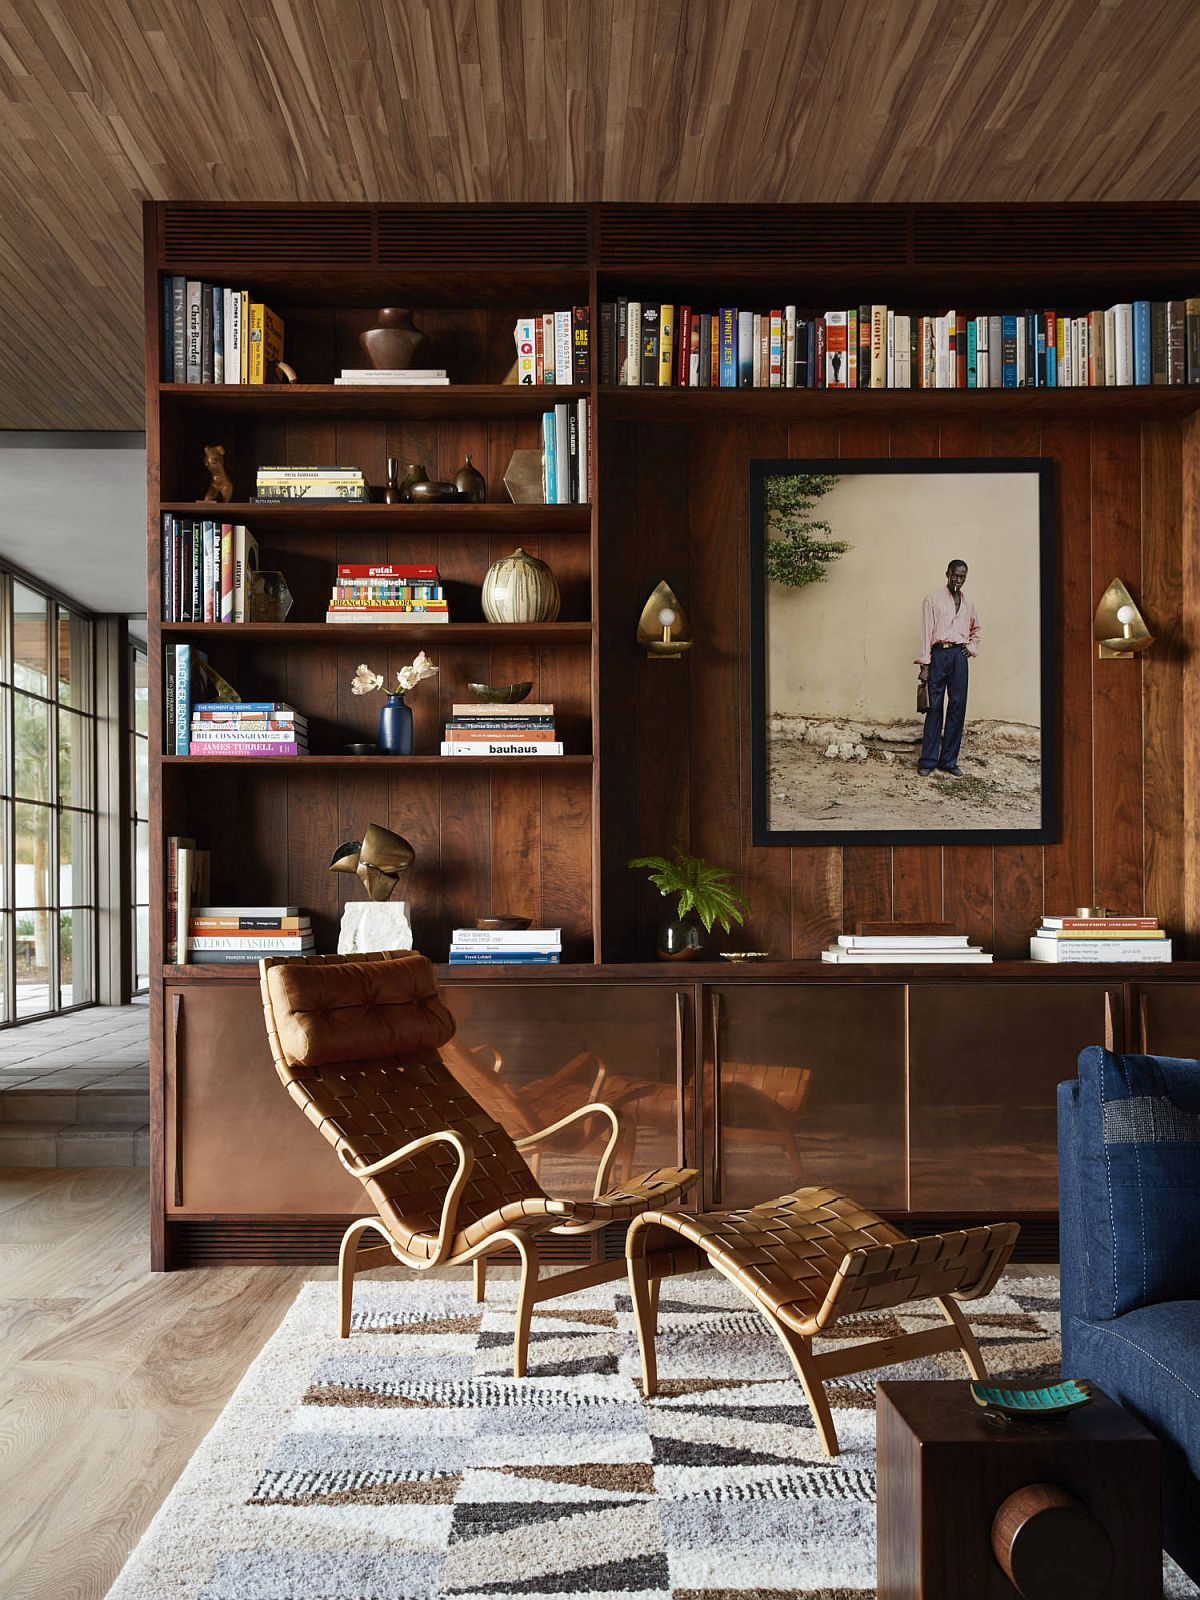 Fabulous walnut shelves and cabinets used throughout the house give it a cozy, modern look